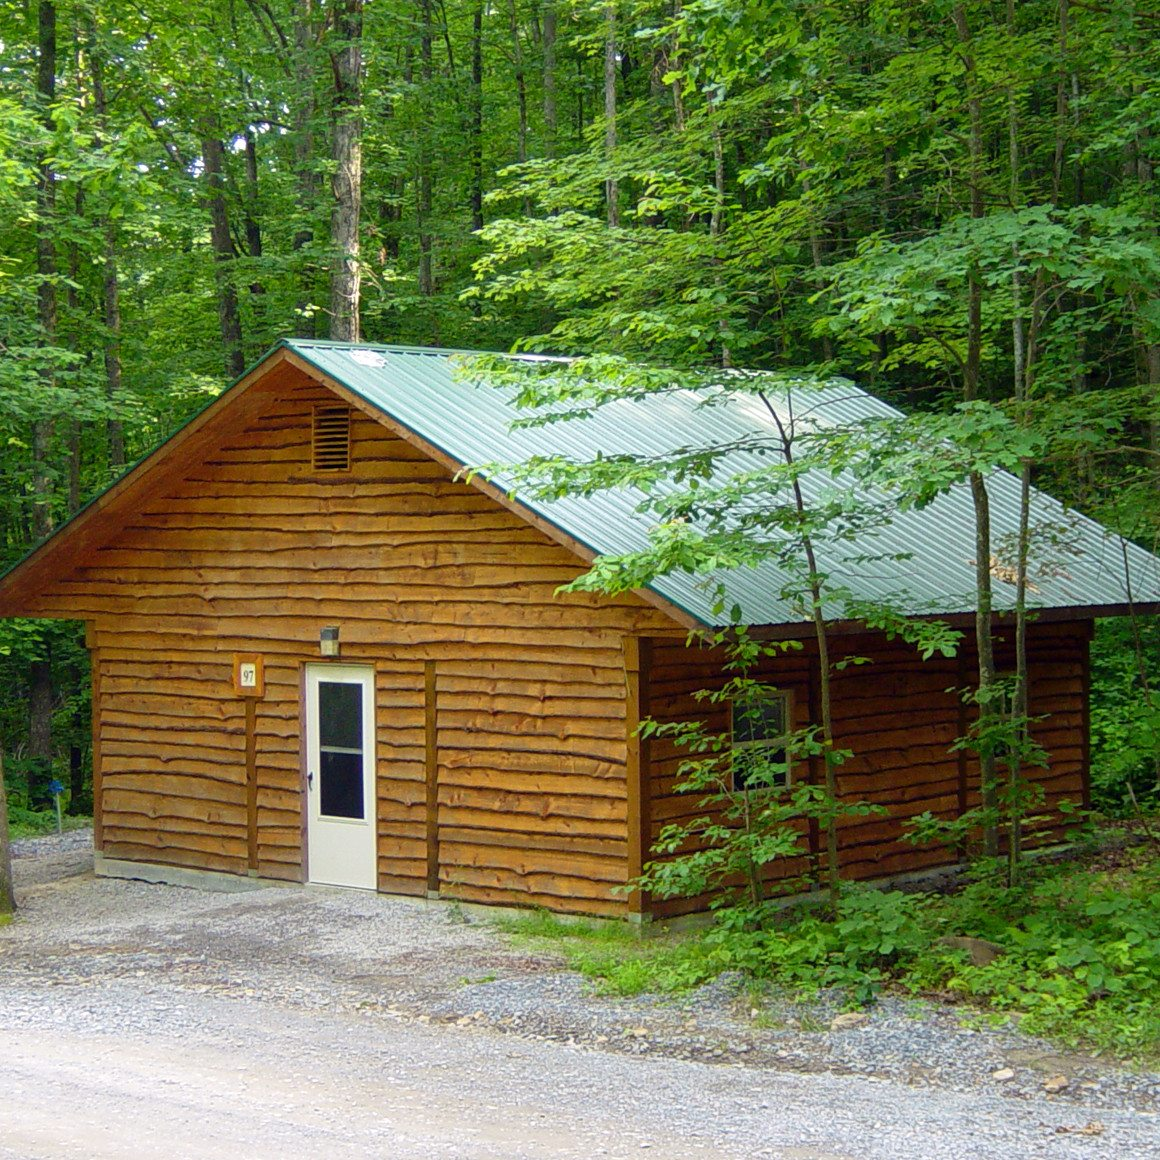 A large bath and bunk house nestled in the woods at ACE Adventure Resort